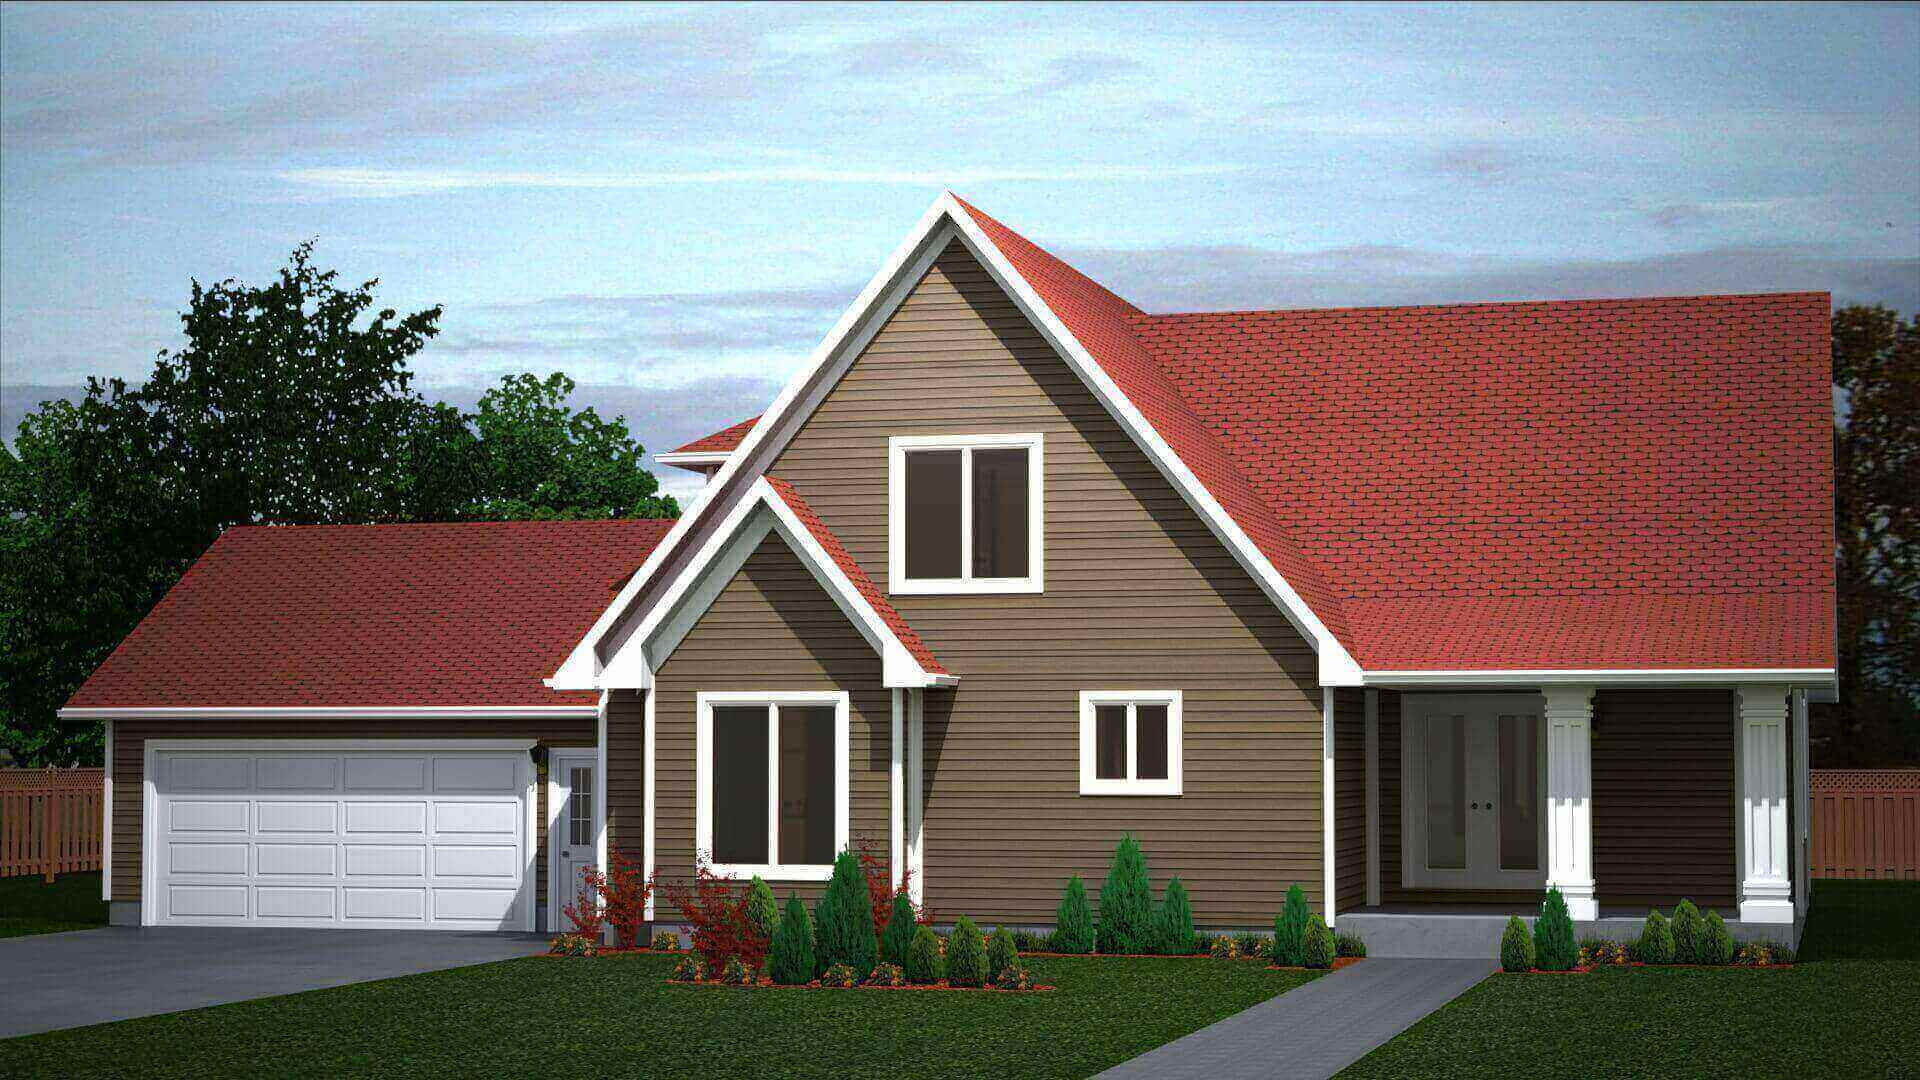 2210 sq.ft. timber mart house 4 bed 3 bath exterior render